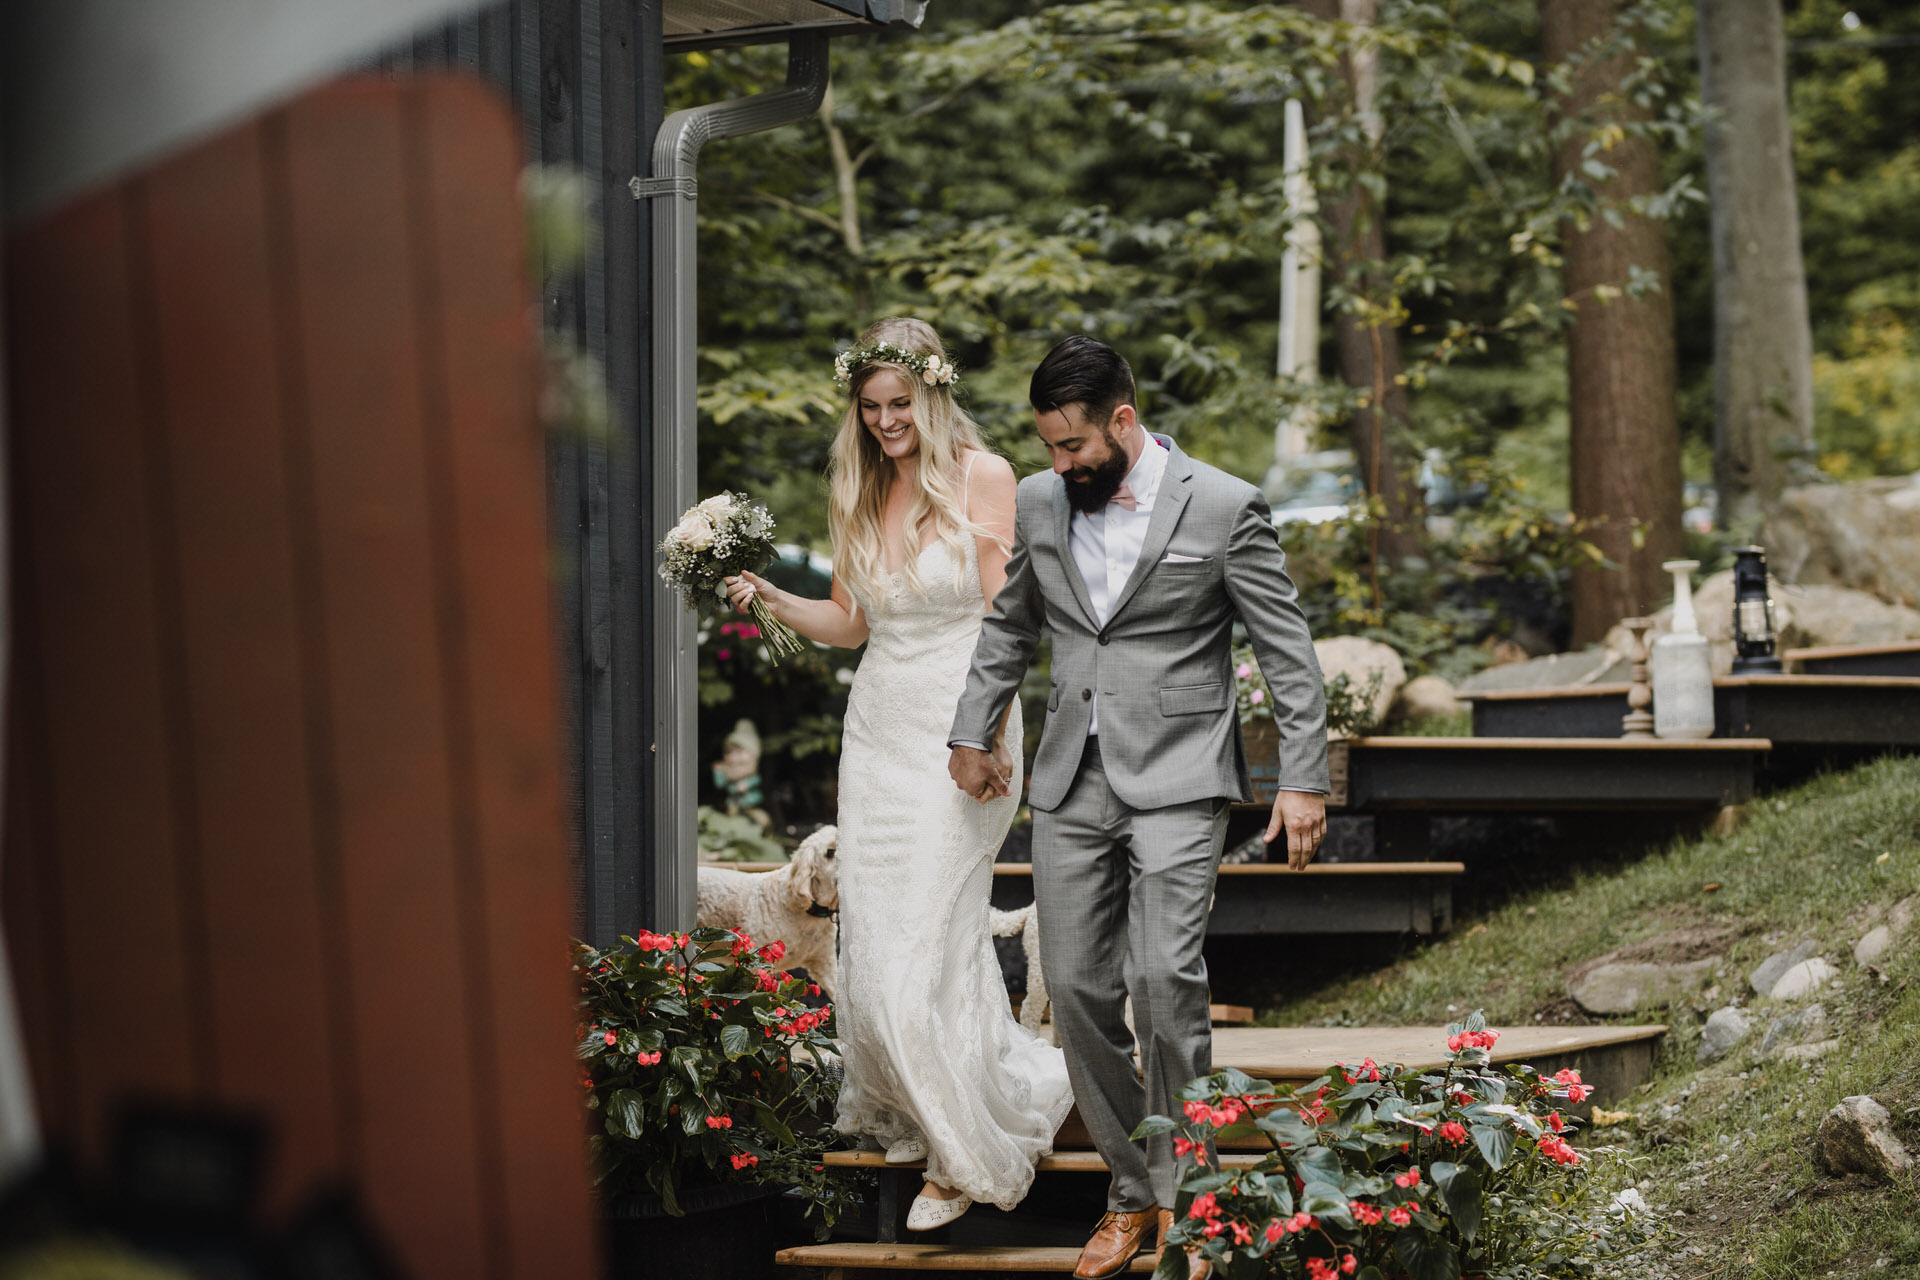 Muskoka Wedding - bride and groom entrance